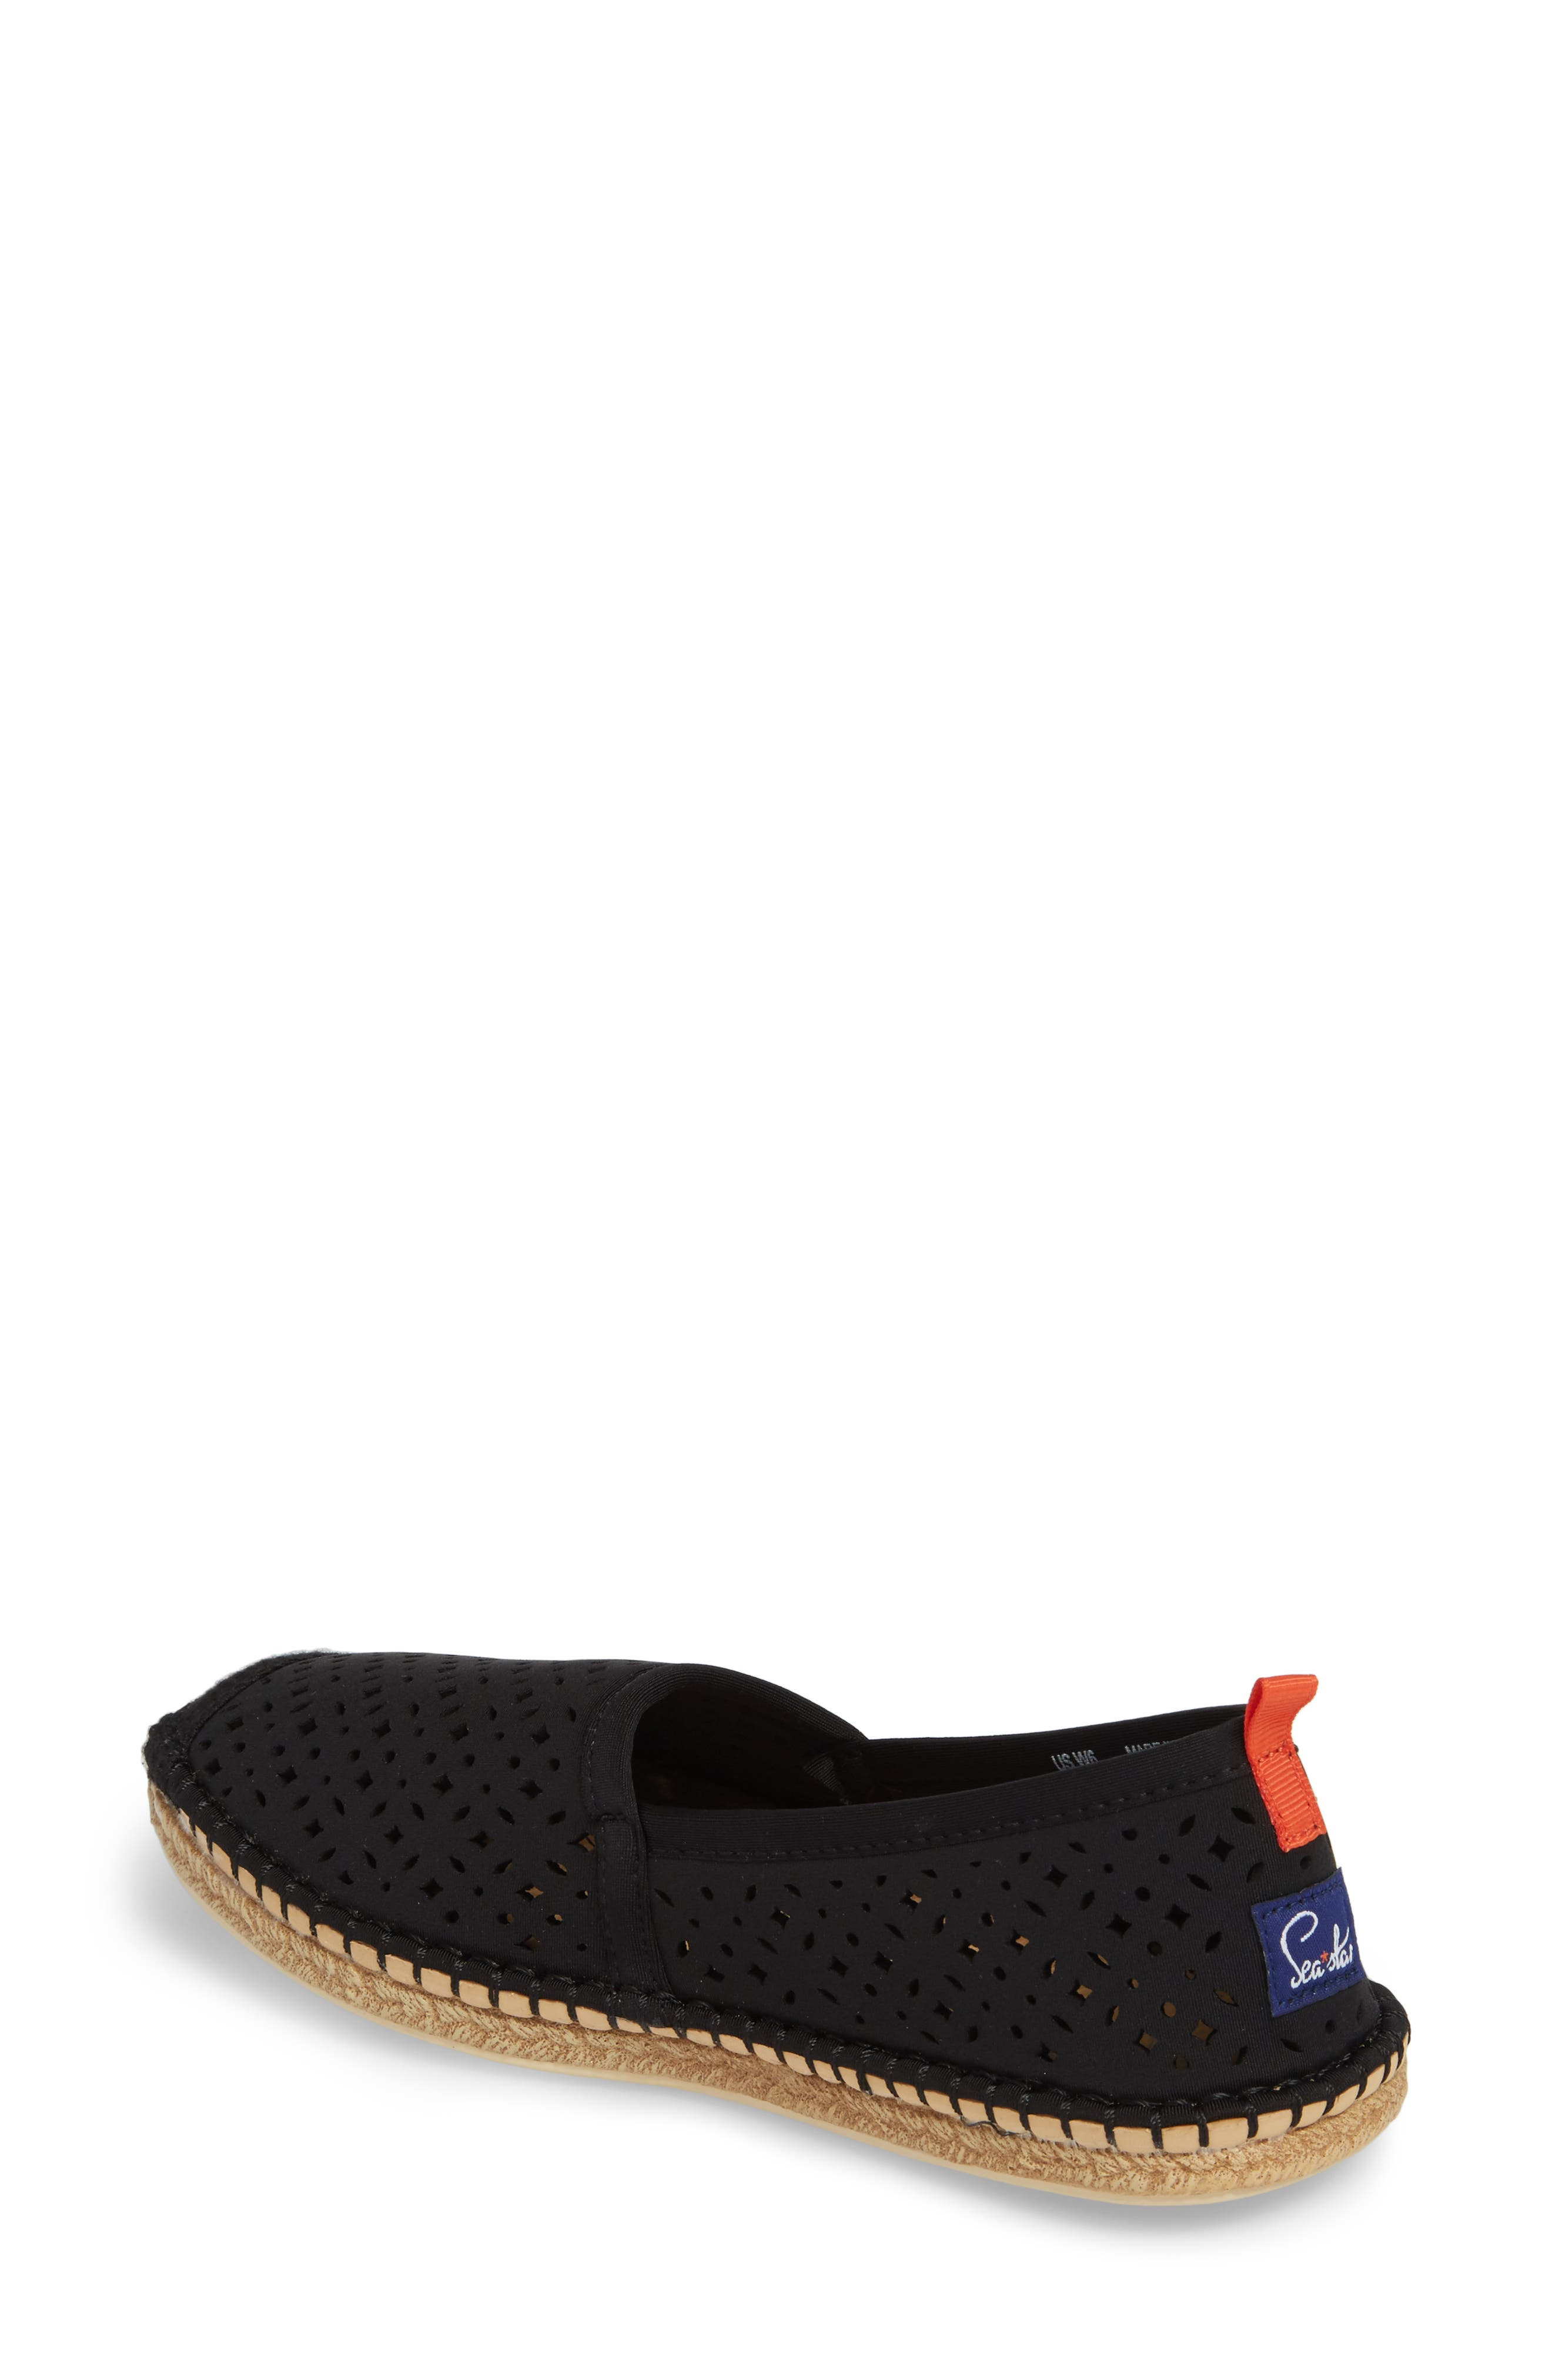 Sea Star Beachcomber Espadrille Sandal,                             Alternate thumbnail 2, color,                             BLACK EYELET